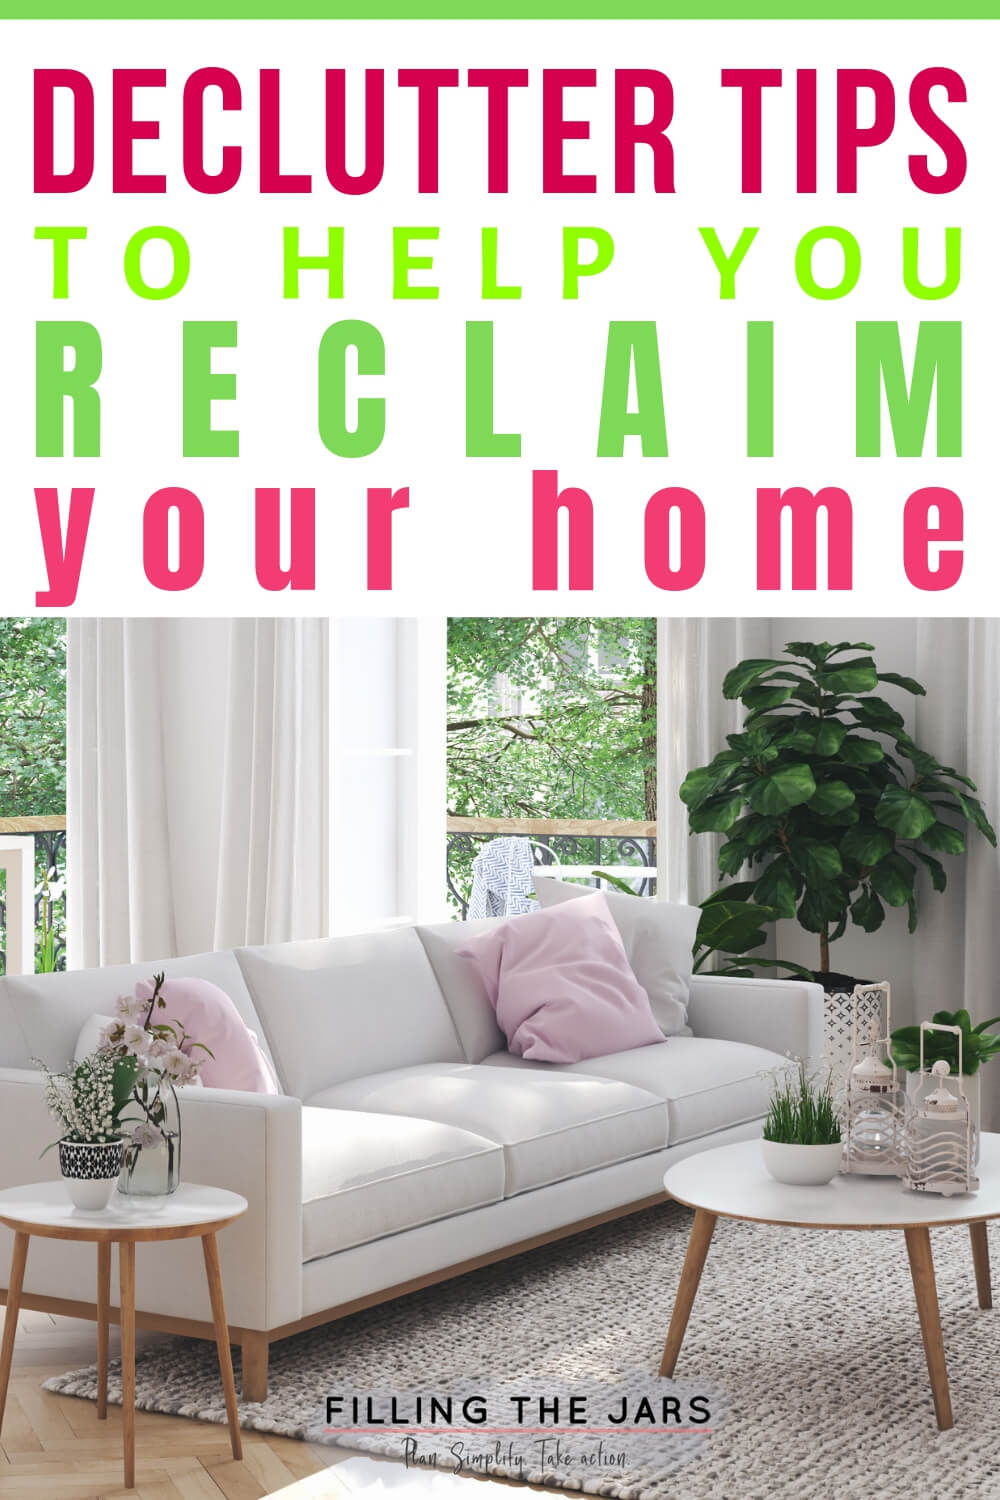 declutter tips text over image of white couch and open french doors in clutter-free living room